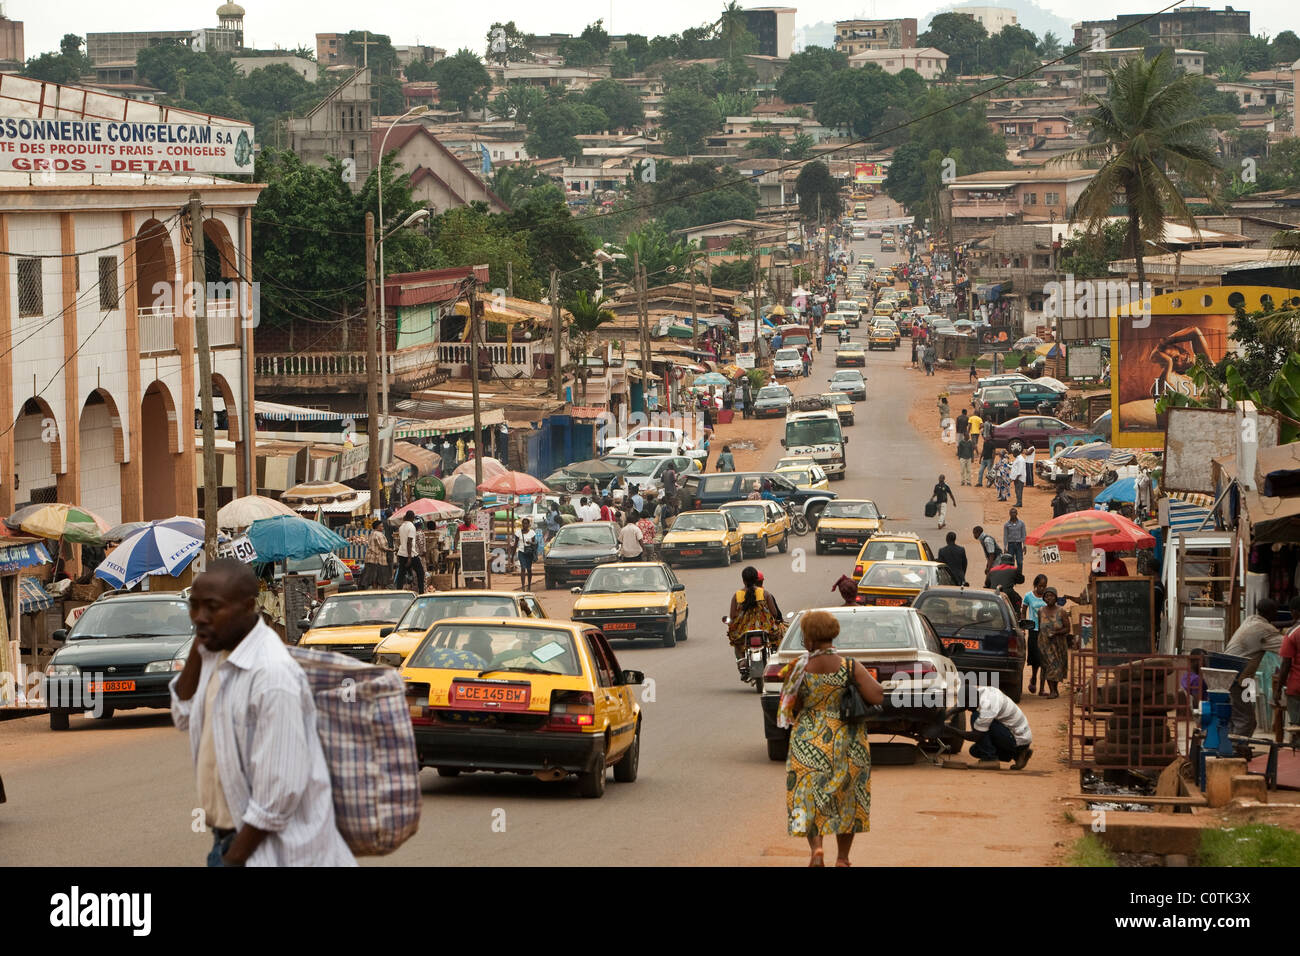 Yaounde, a city of 1.1 million, is the capital of Cameroon, West Africa. - Stock Image